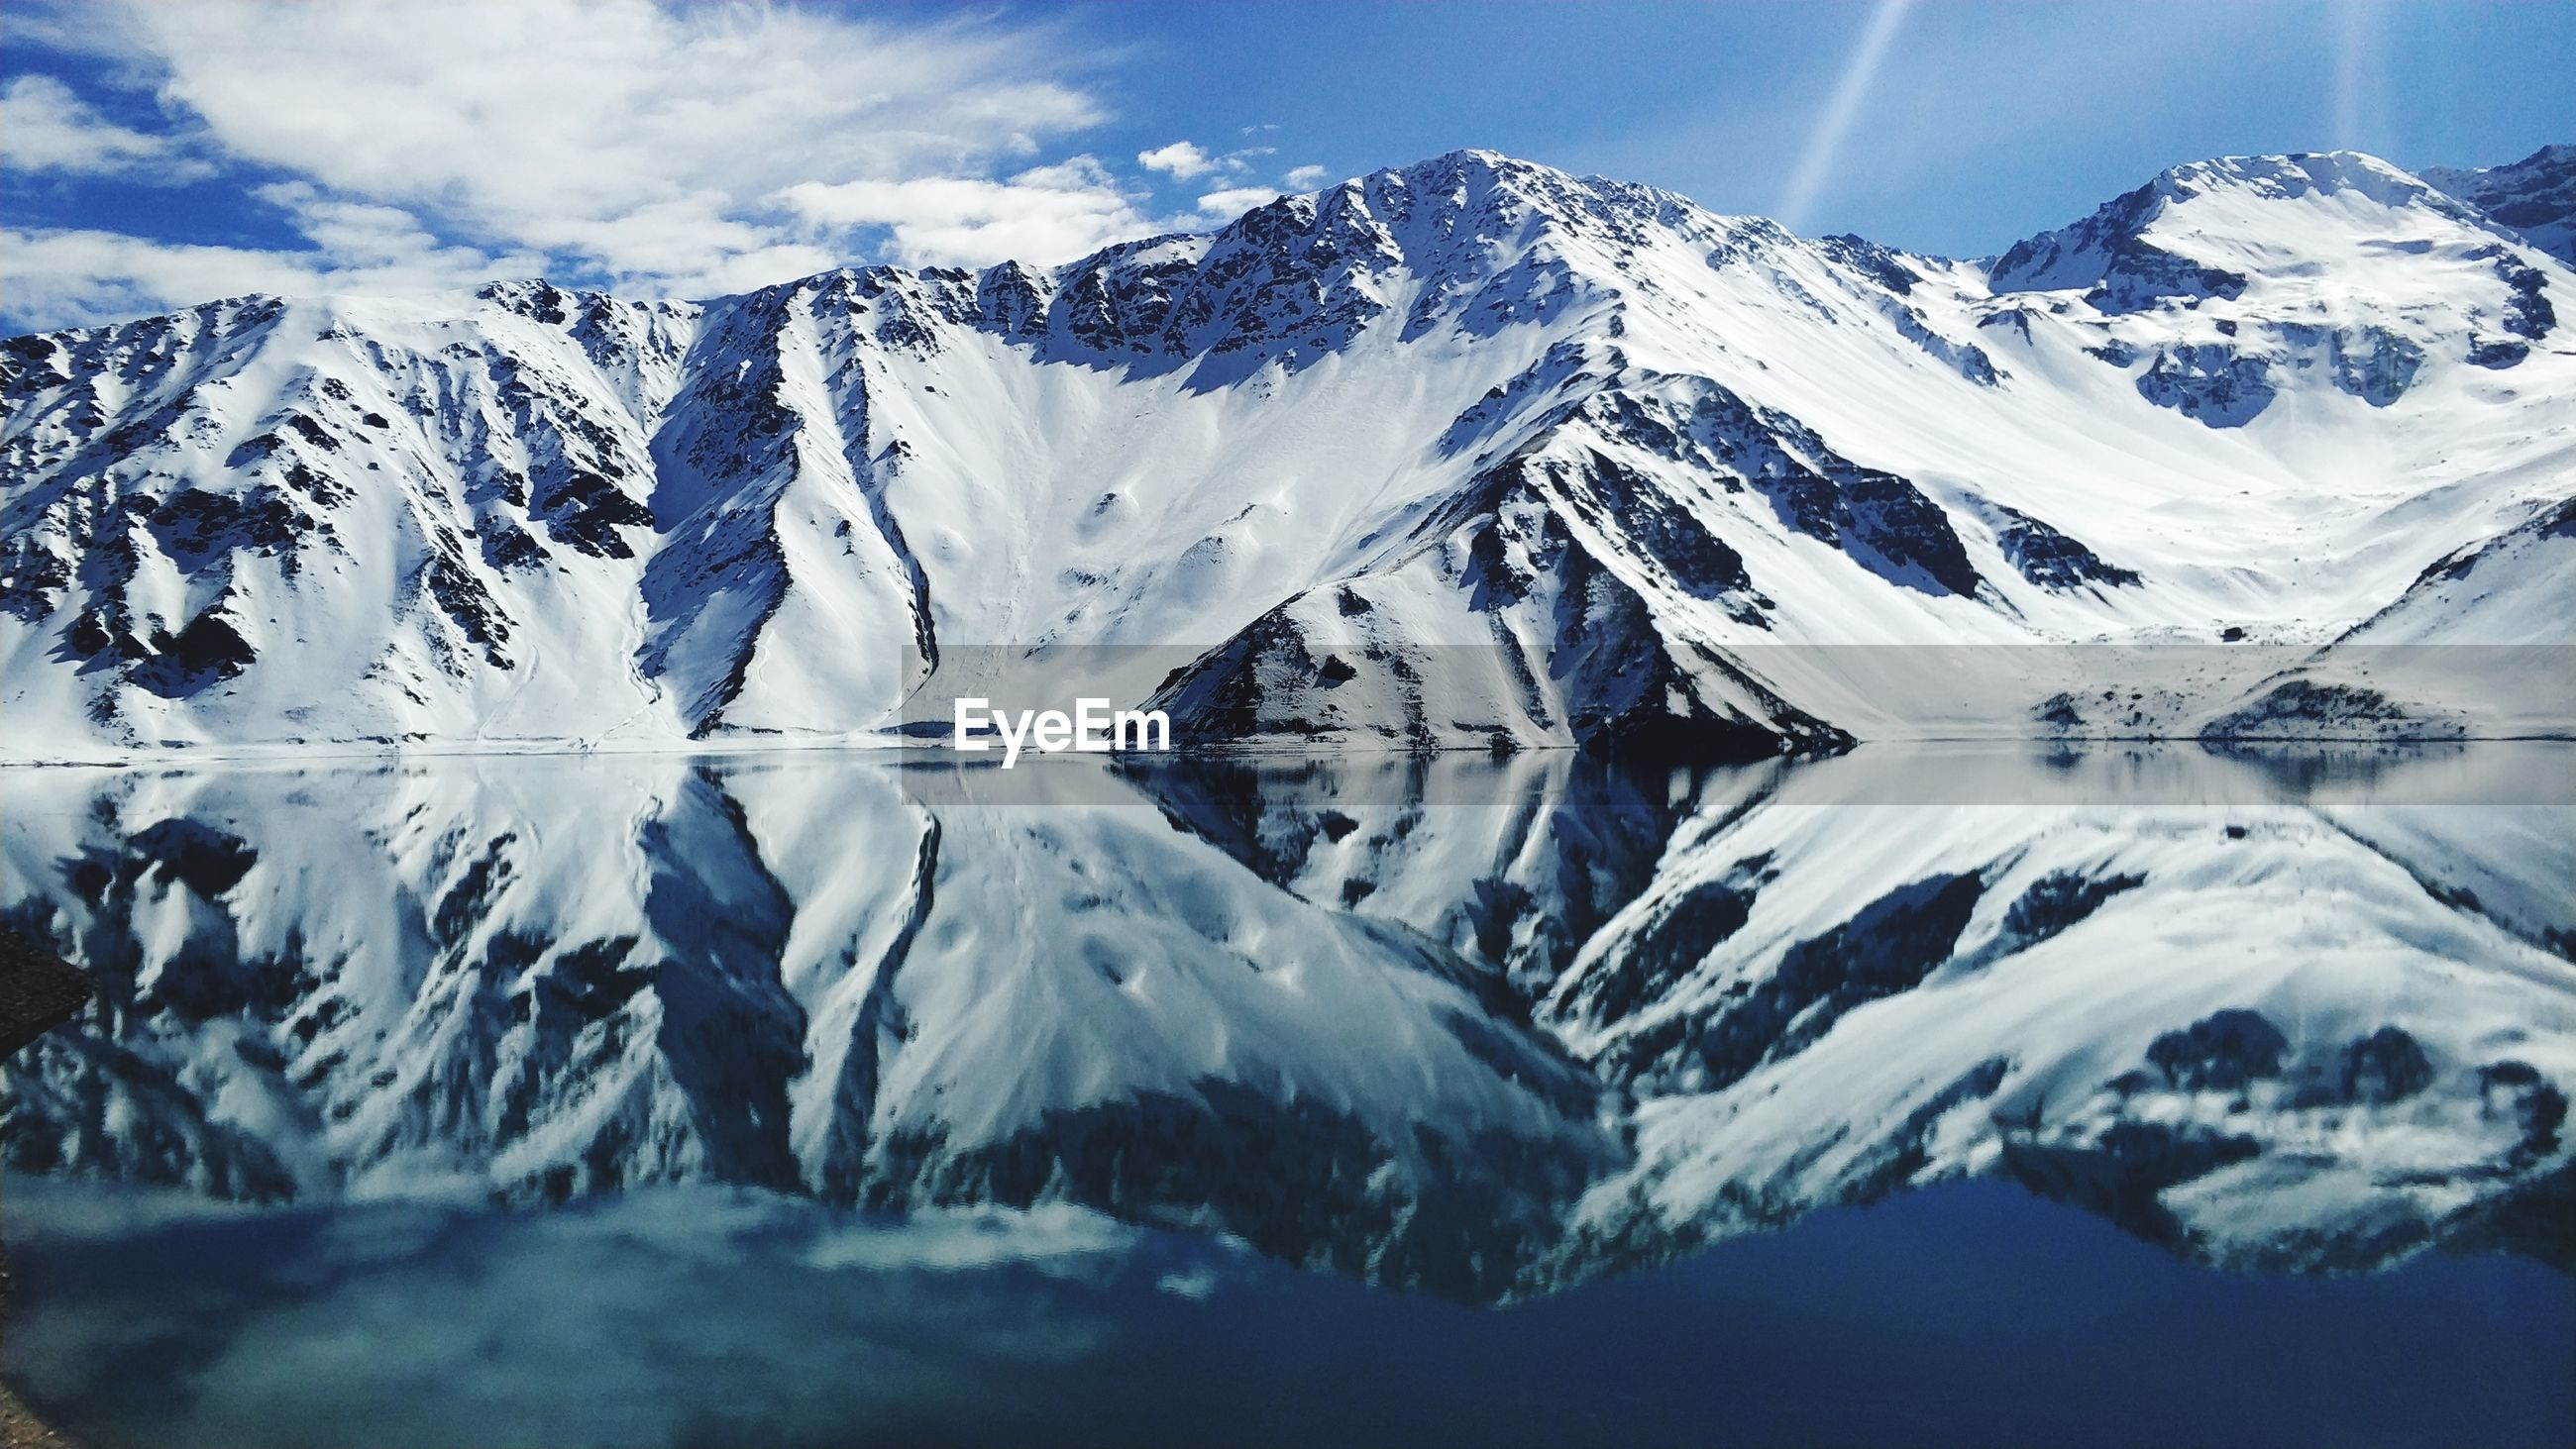 Reflection of snowcapped mountains in lake